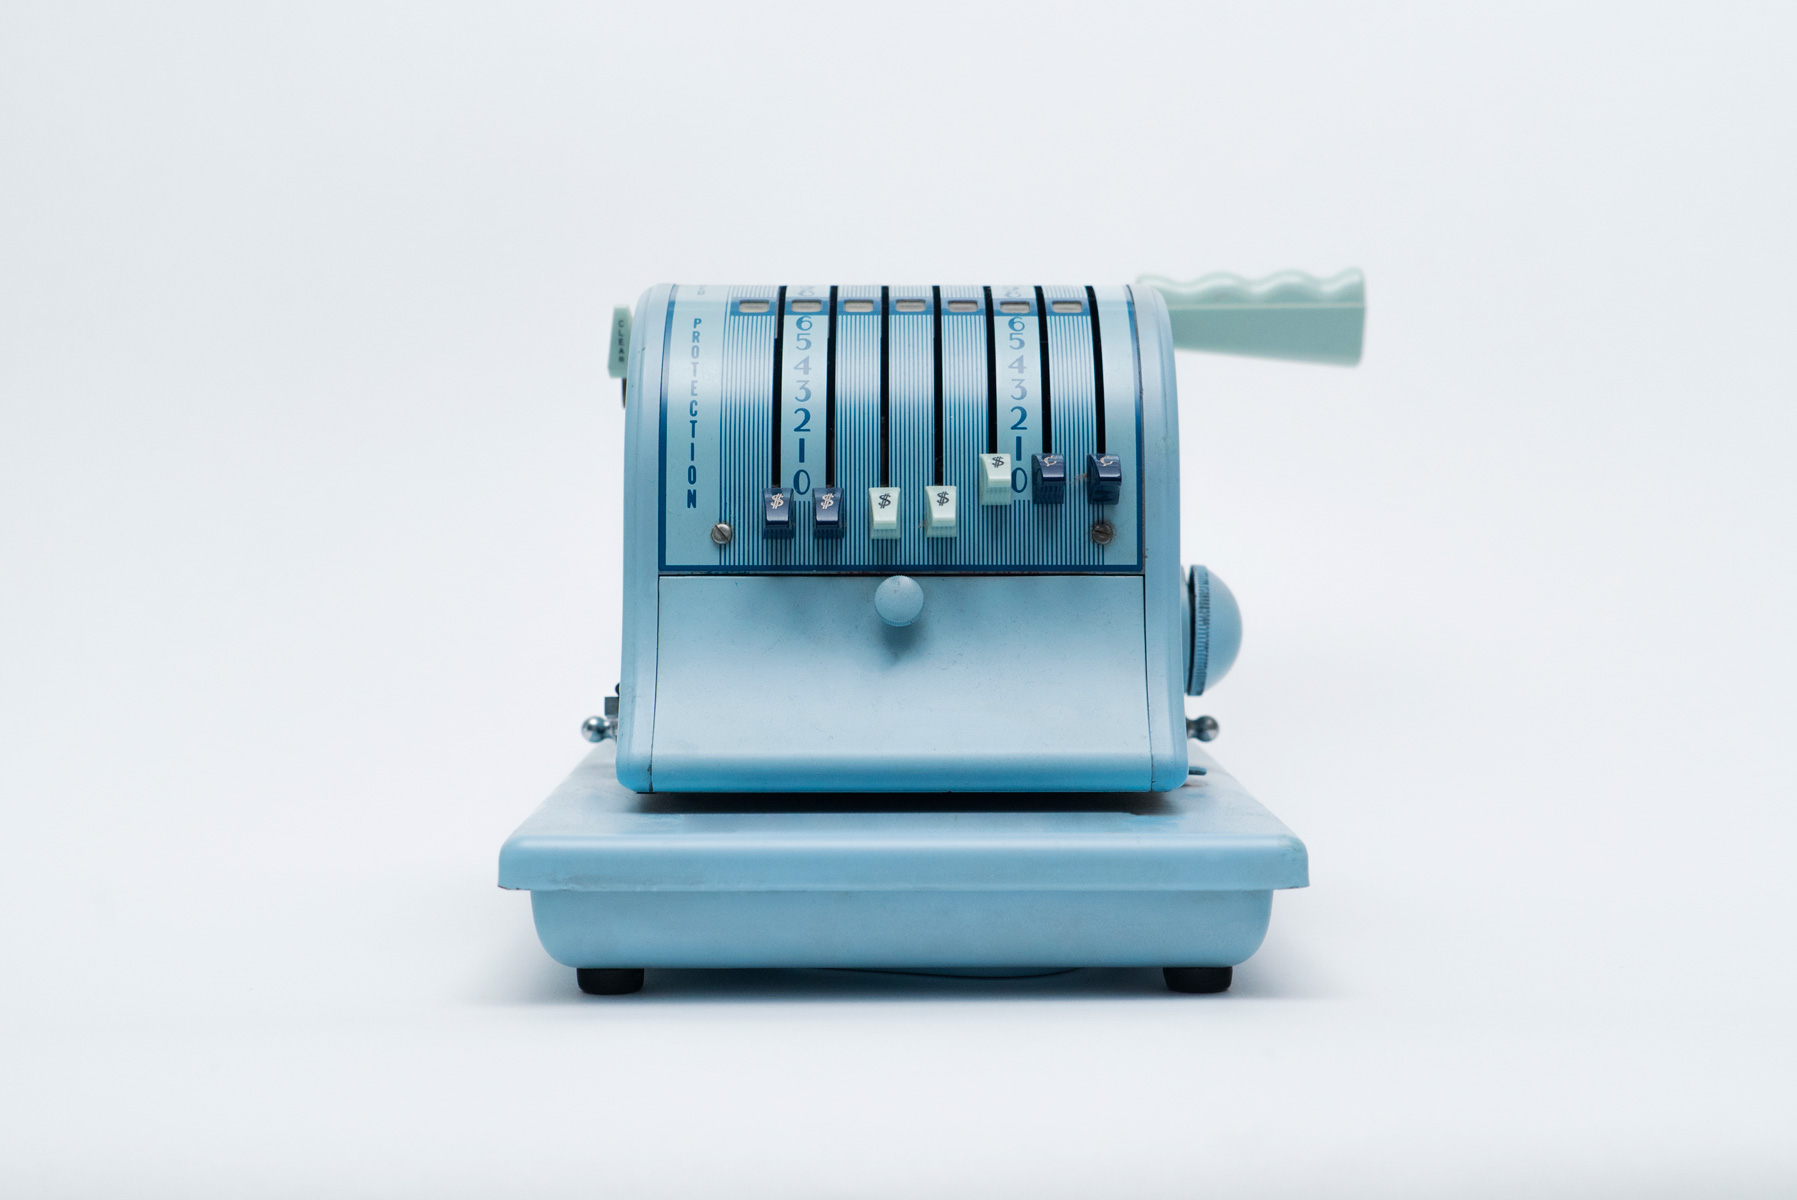 cash_register_blue_money_business_old_fashioned_vintage_web.jpg